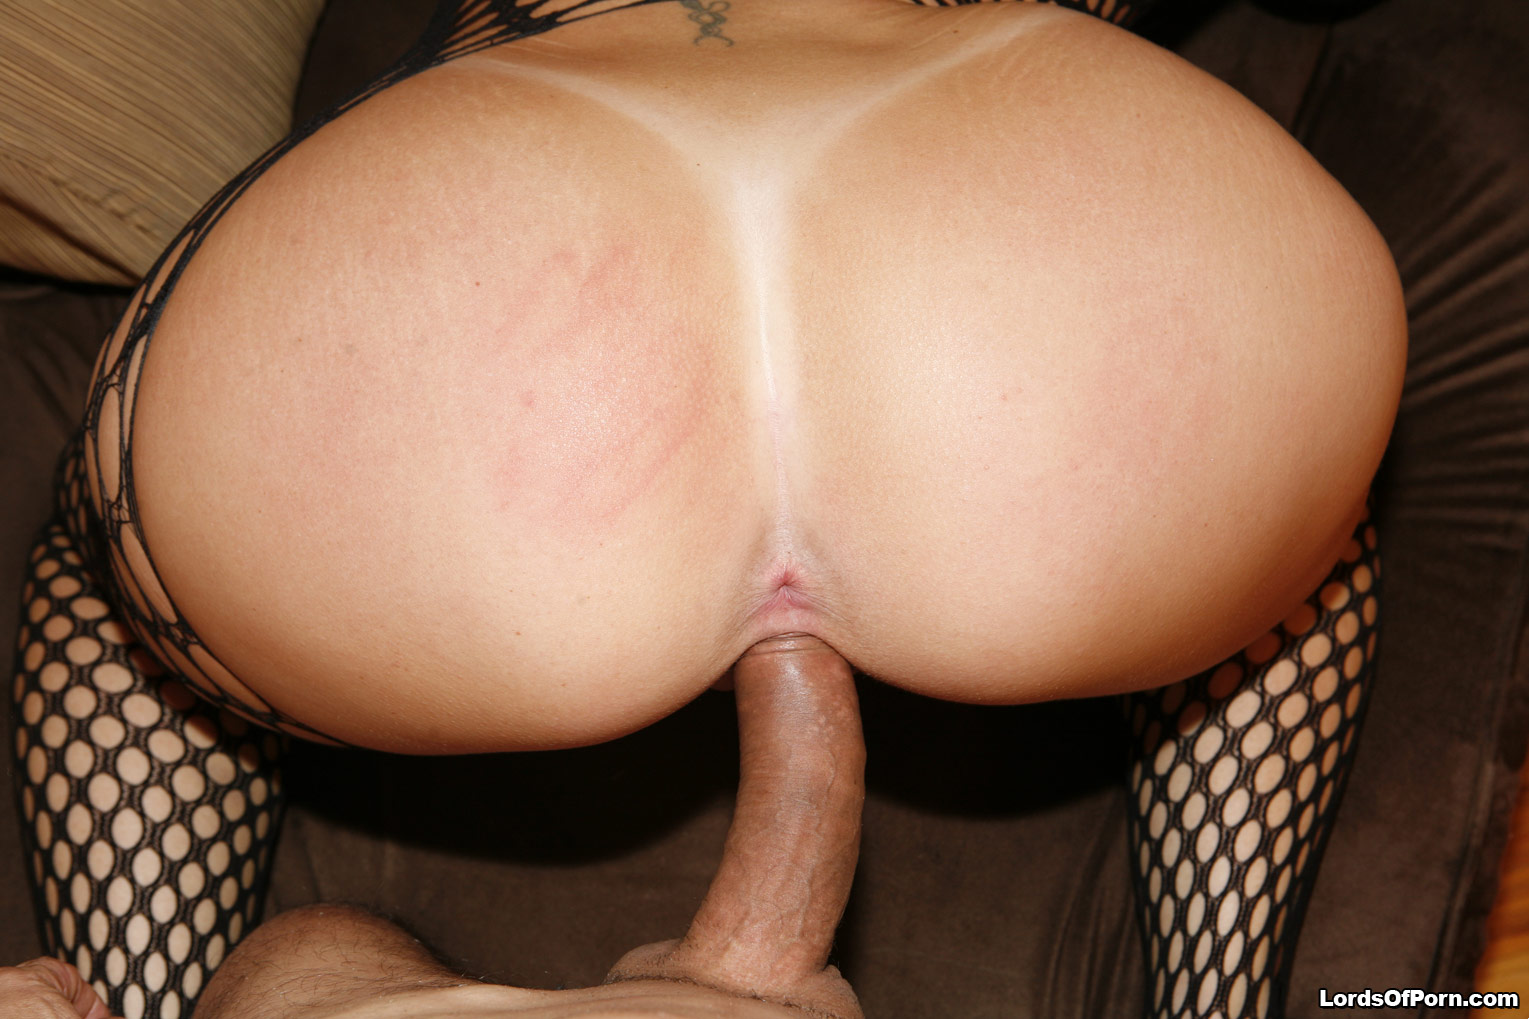 image Juicy tits and ass first time latina